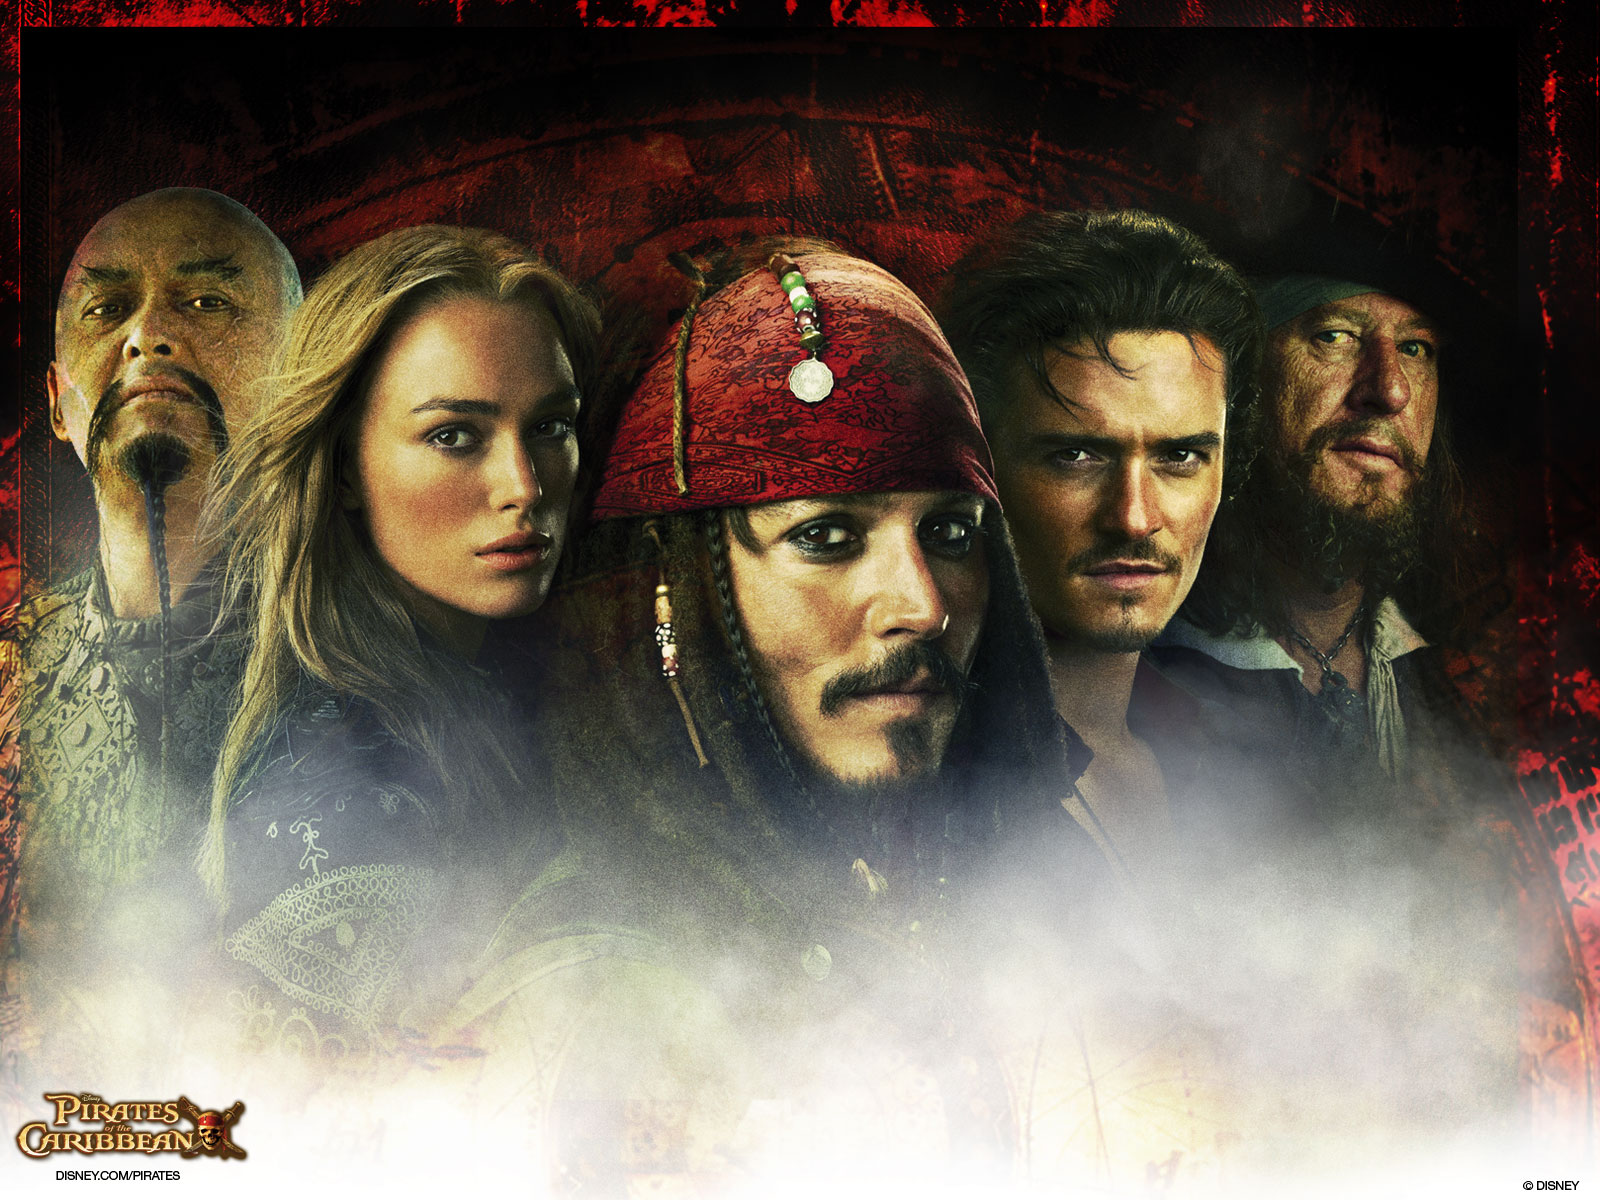 Assistir Piratas do Caribe 3 No Fim do